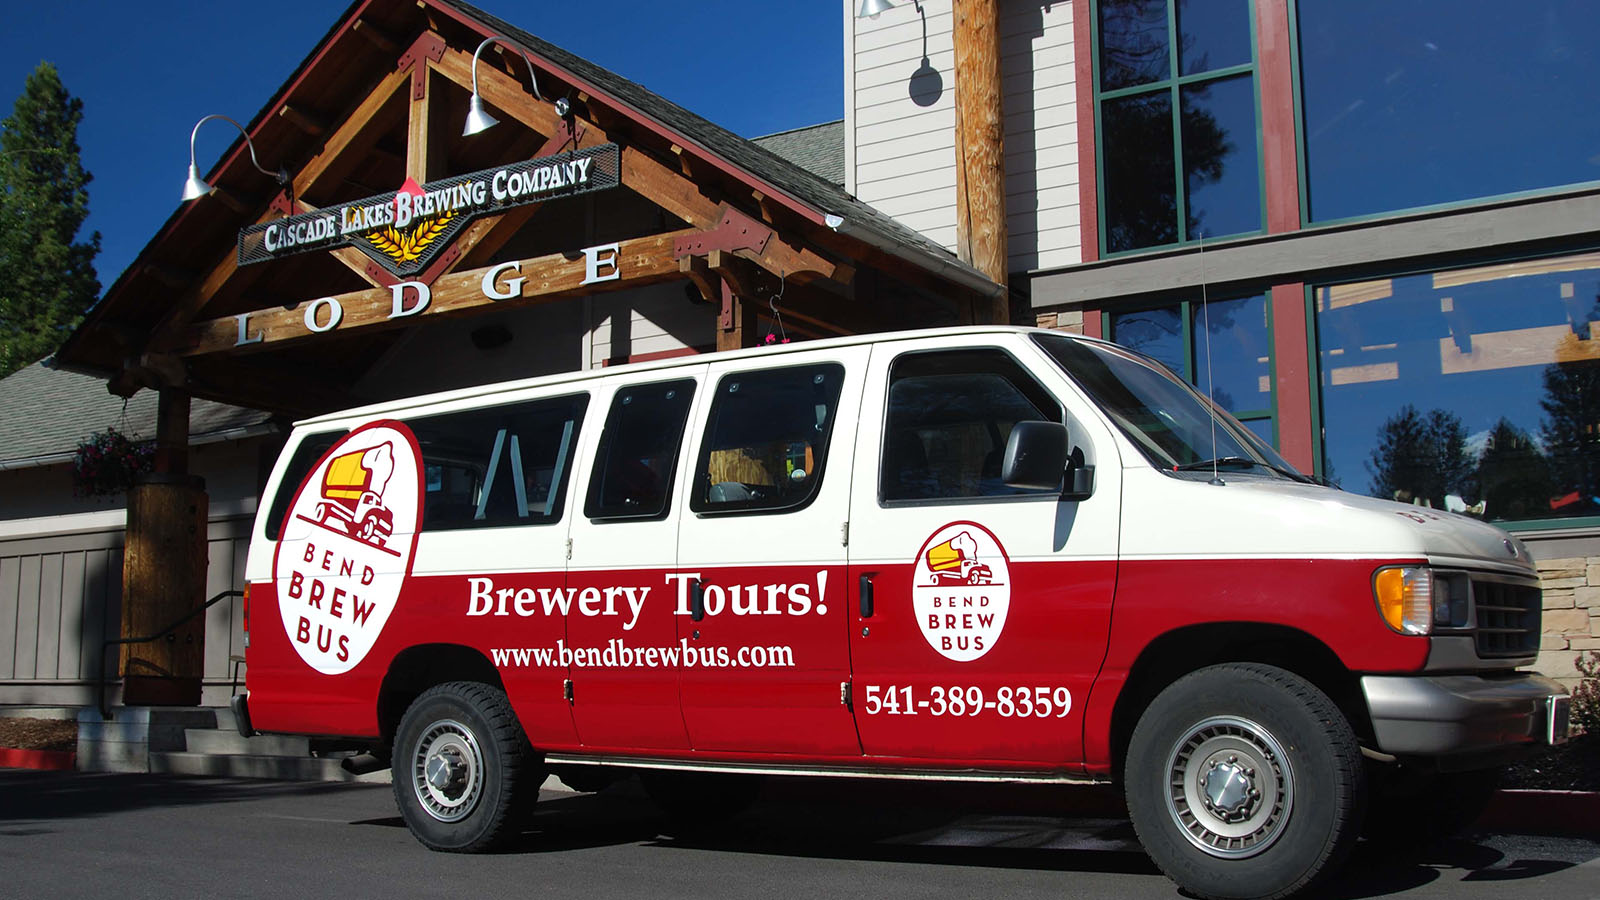 Travel Bus Tours From Sisters Oregonn